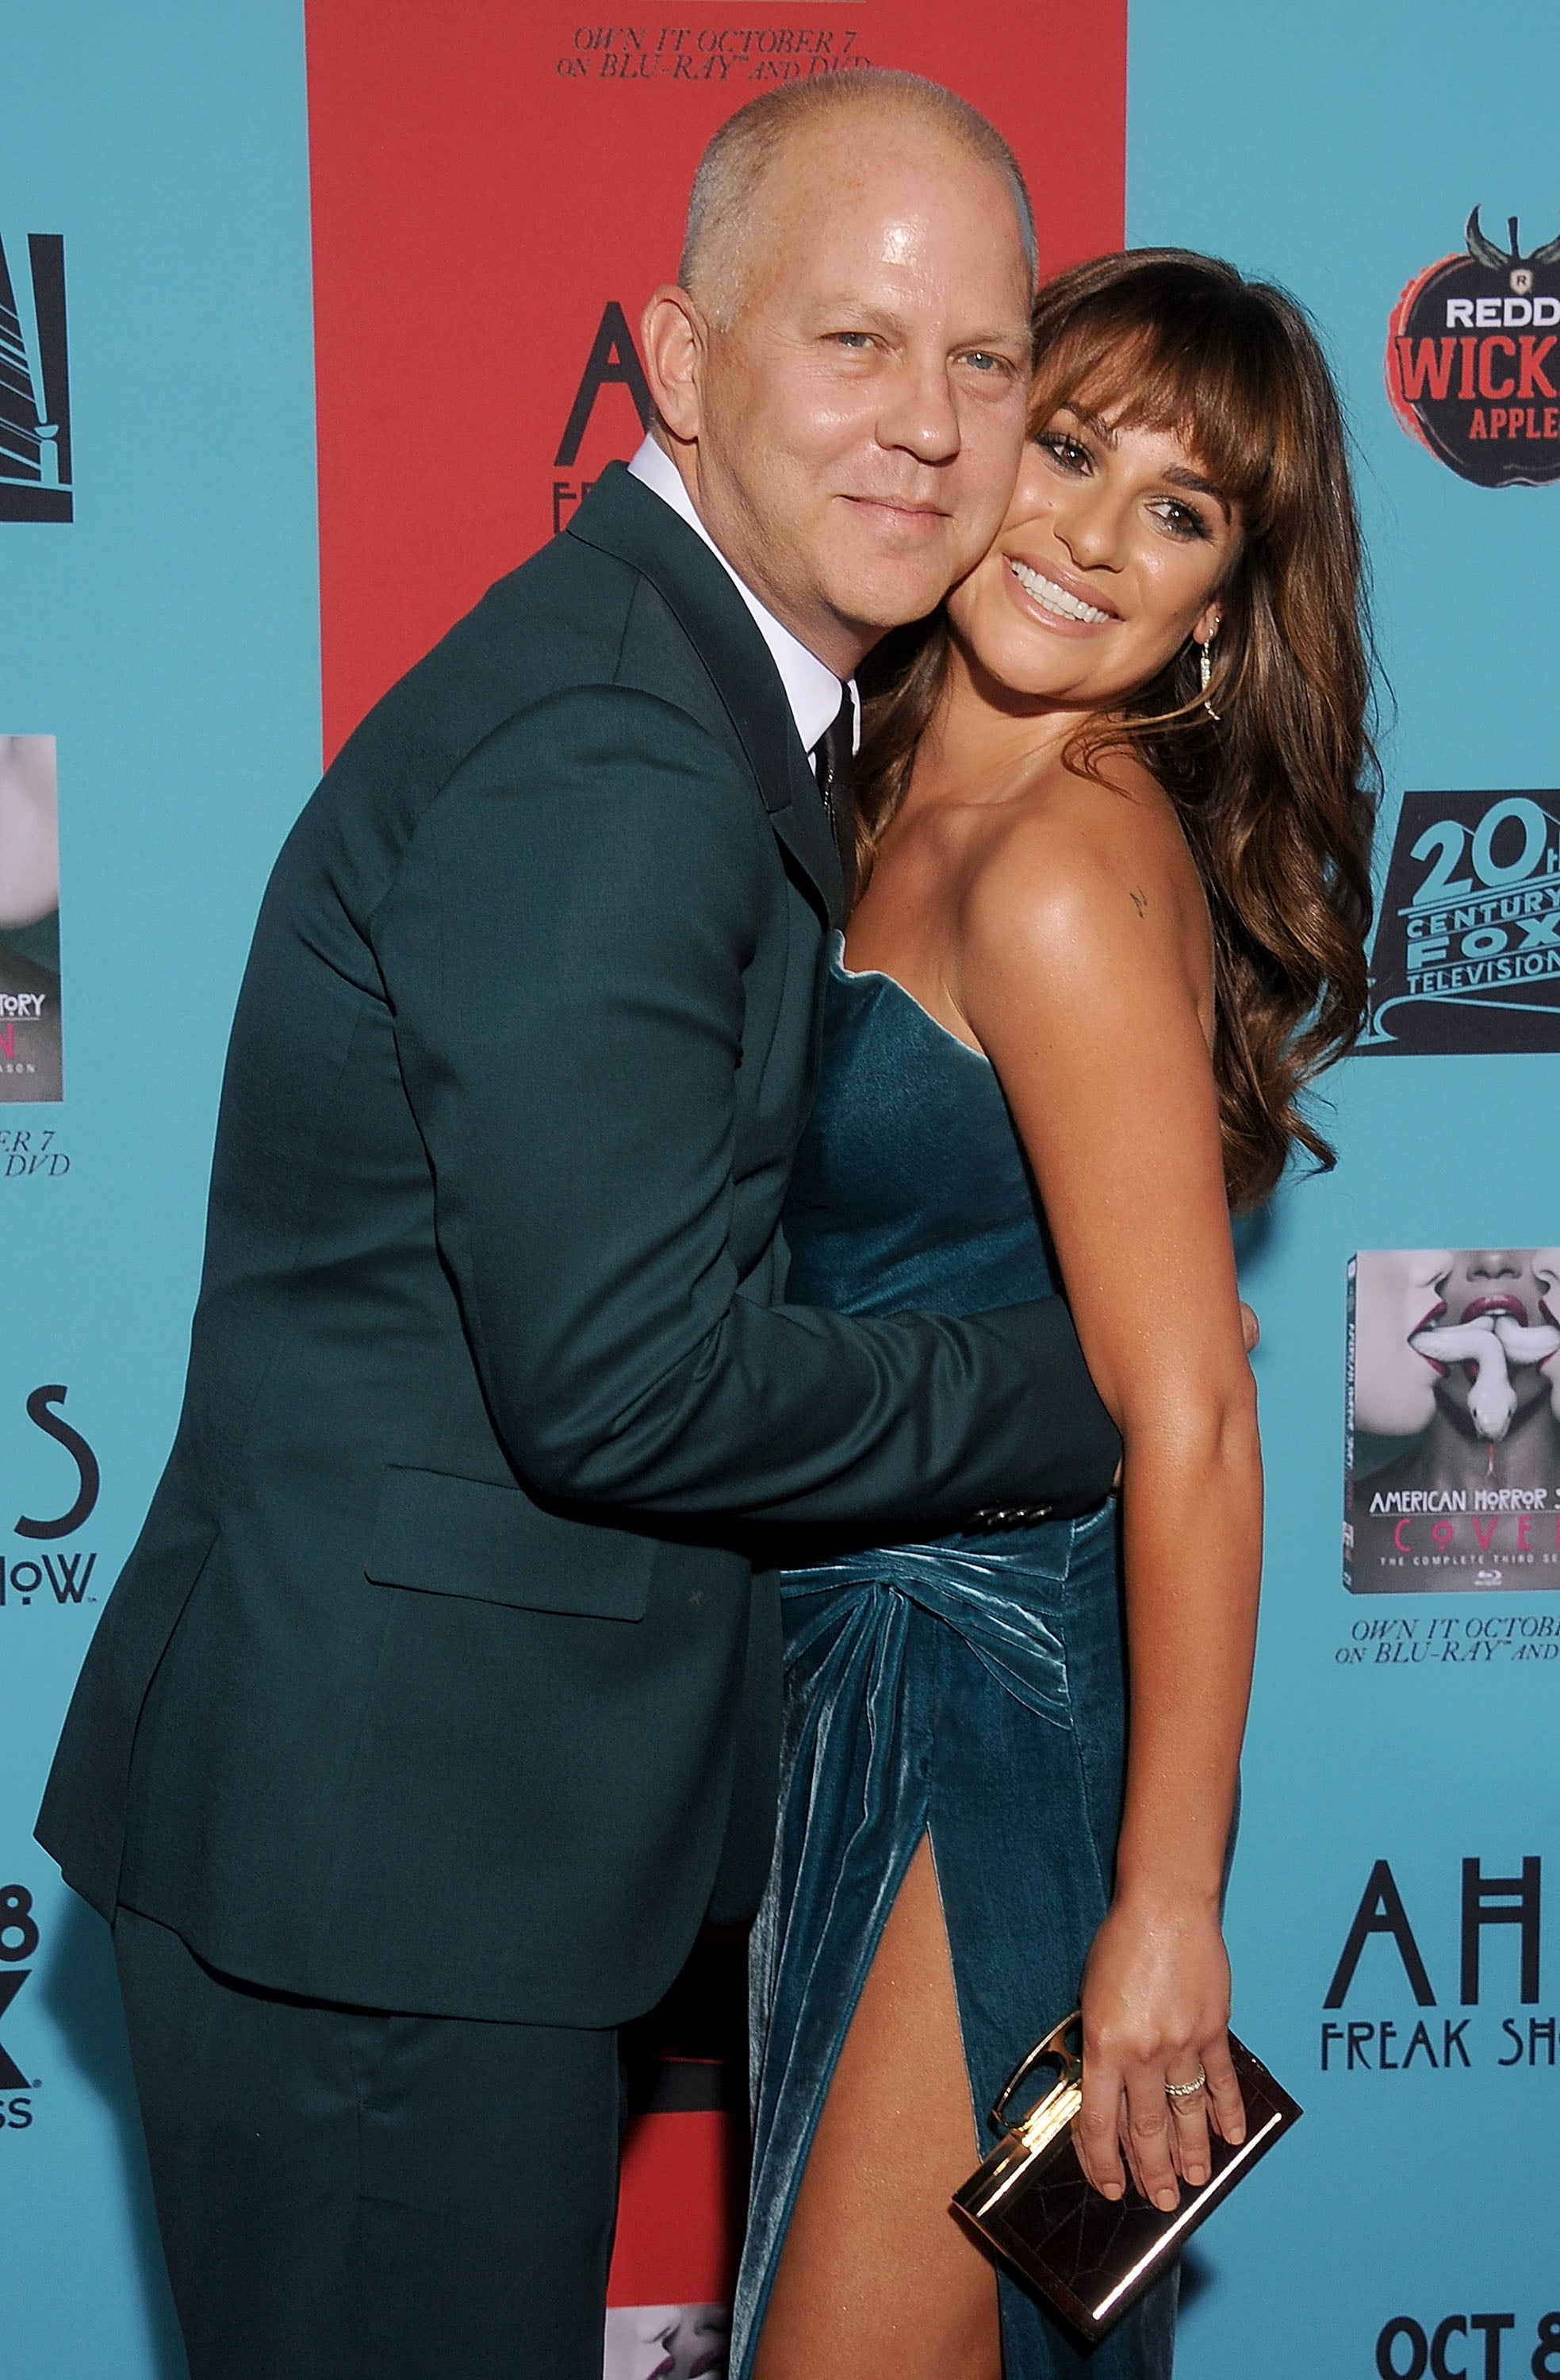 HOLLYWOOD, CA - OCTOBER 05: Director Ryan Murphy and actress Lea Michele arrive at the Los Angeles premiere of